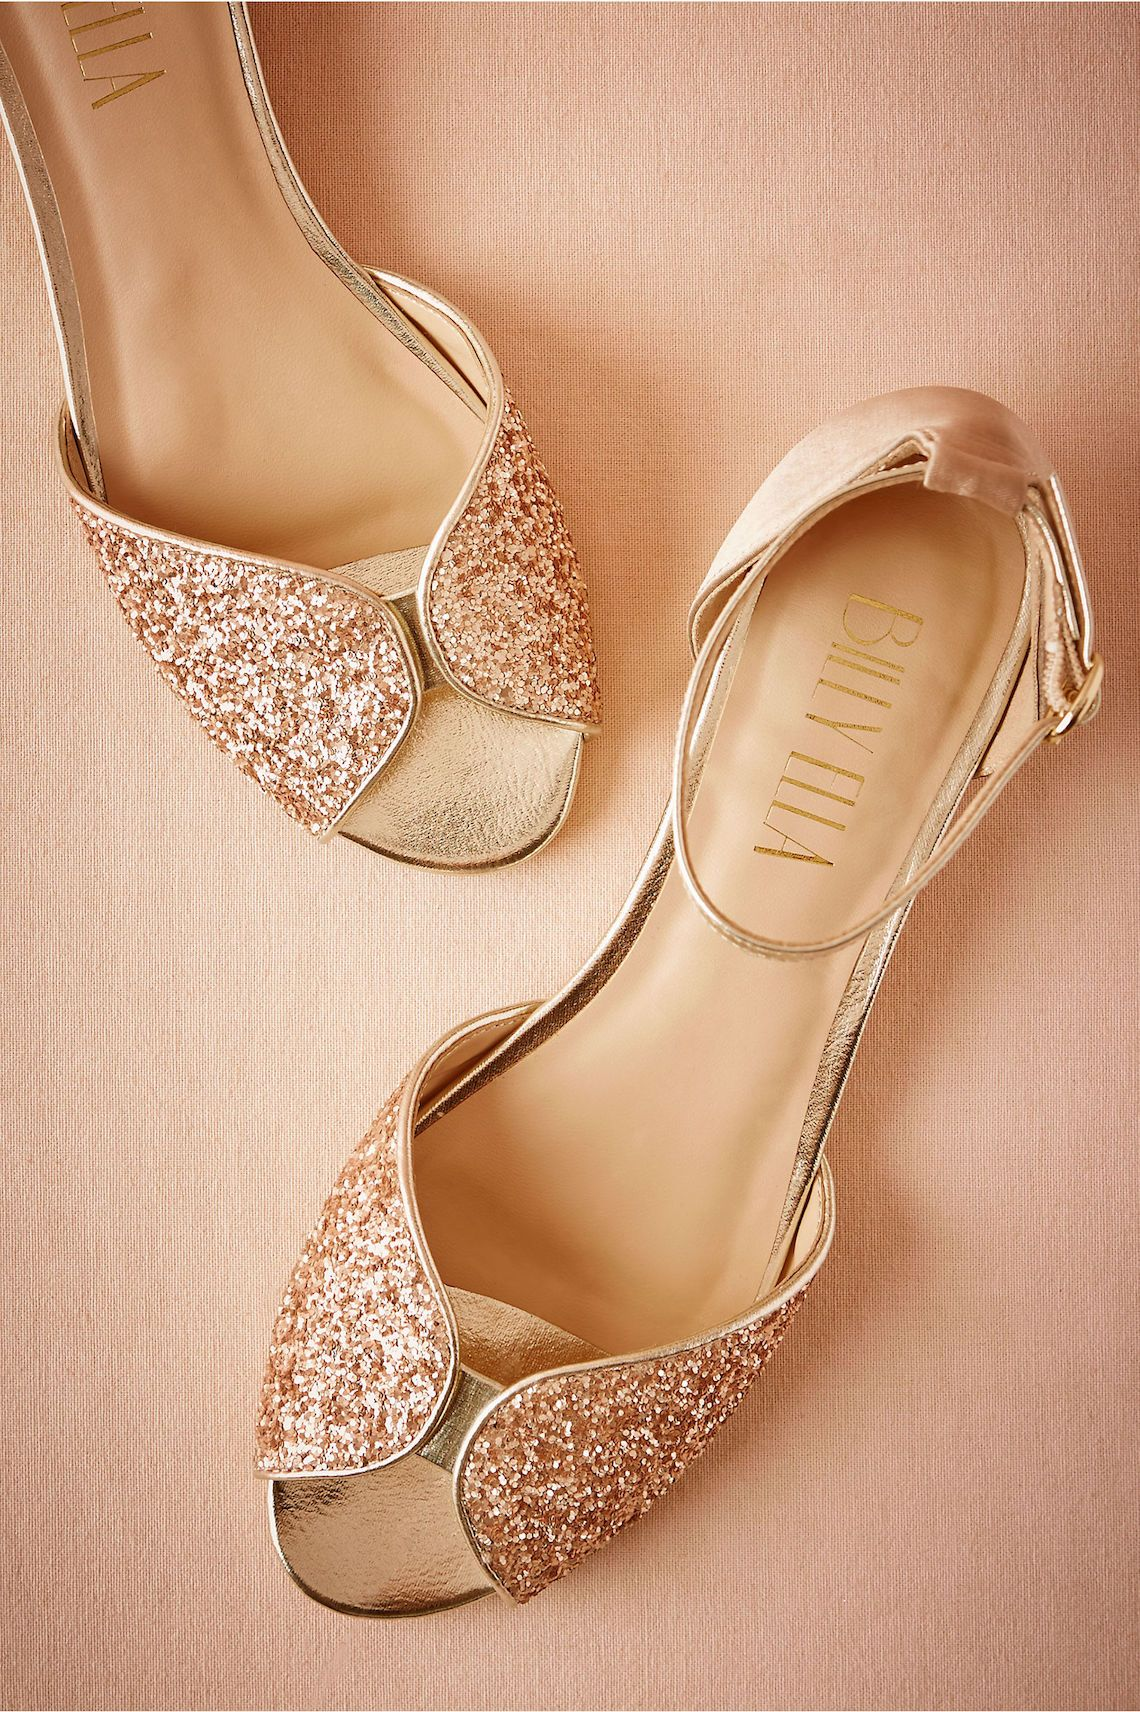 10 Flat Wedding Shoes (That Are Just As Chic As Heels)  cb1ce3ff4617